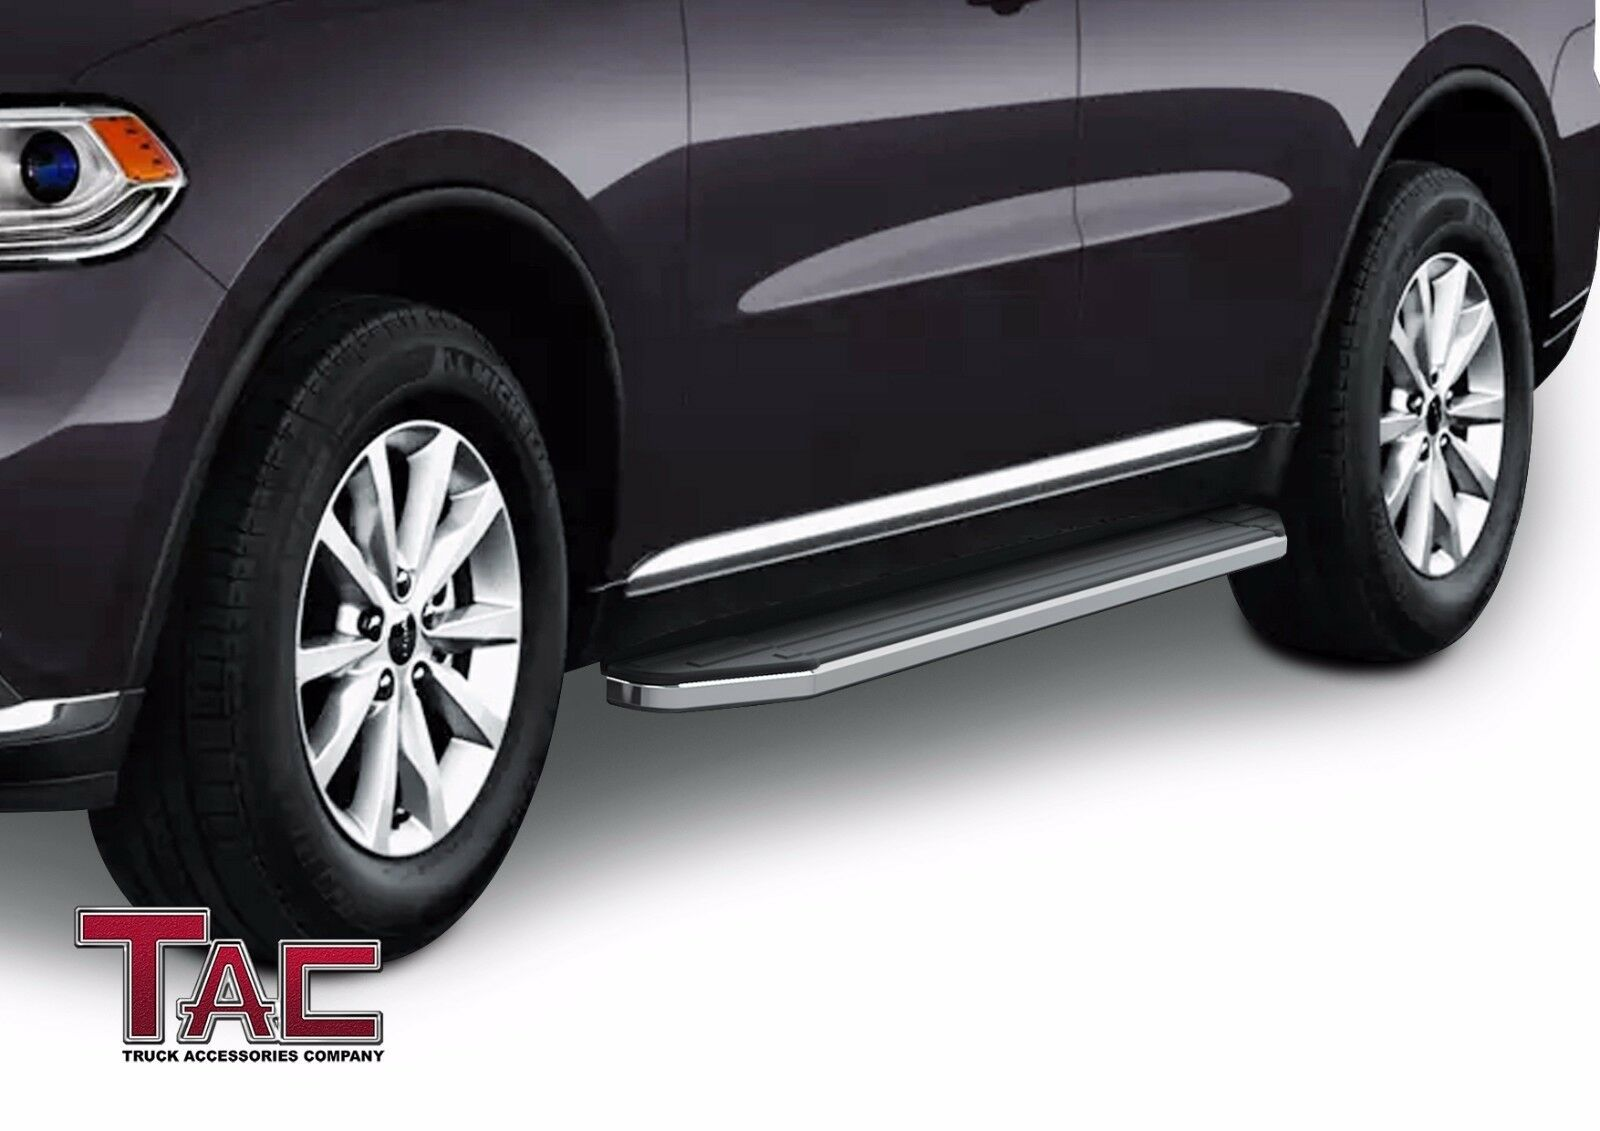 Tac Running Boards Fit 2011 2020 Dodge Durango Suv Aluminum Black Side Steps Nerf Bars Step Rails Running Boards Rock Panel Off Road Exterior Accessories 2pcs Excl R T Gt Gt Plus And Srt